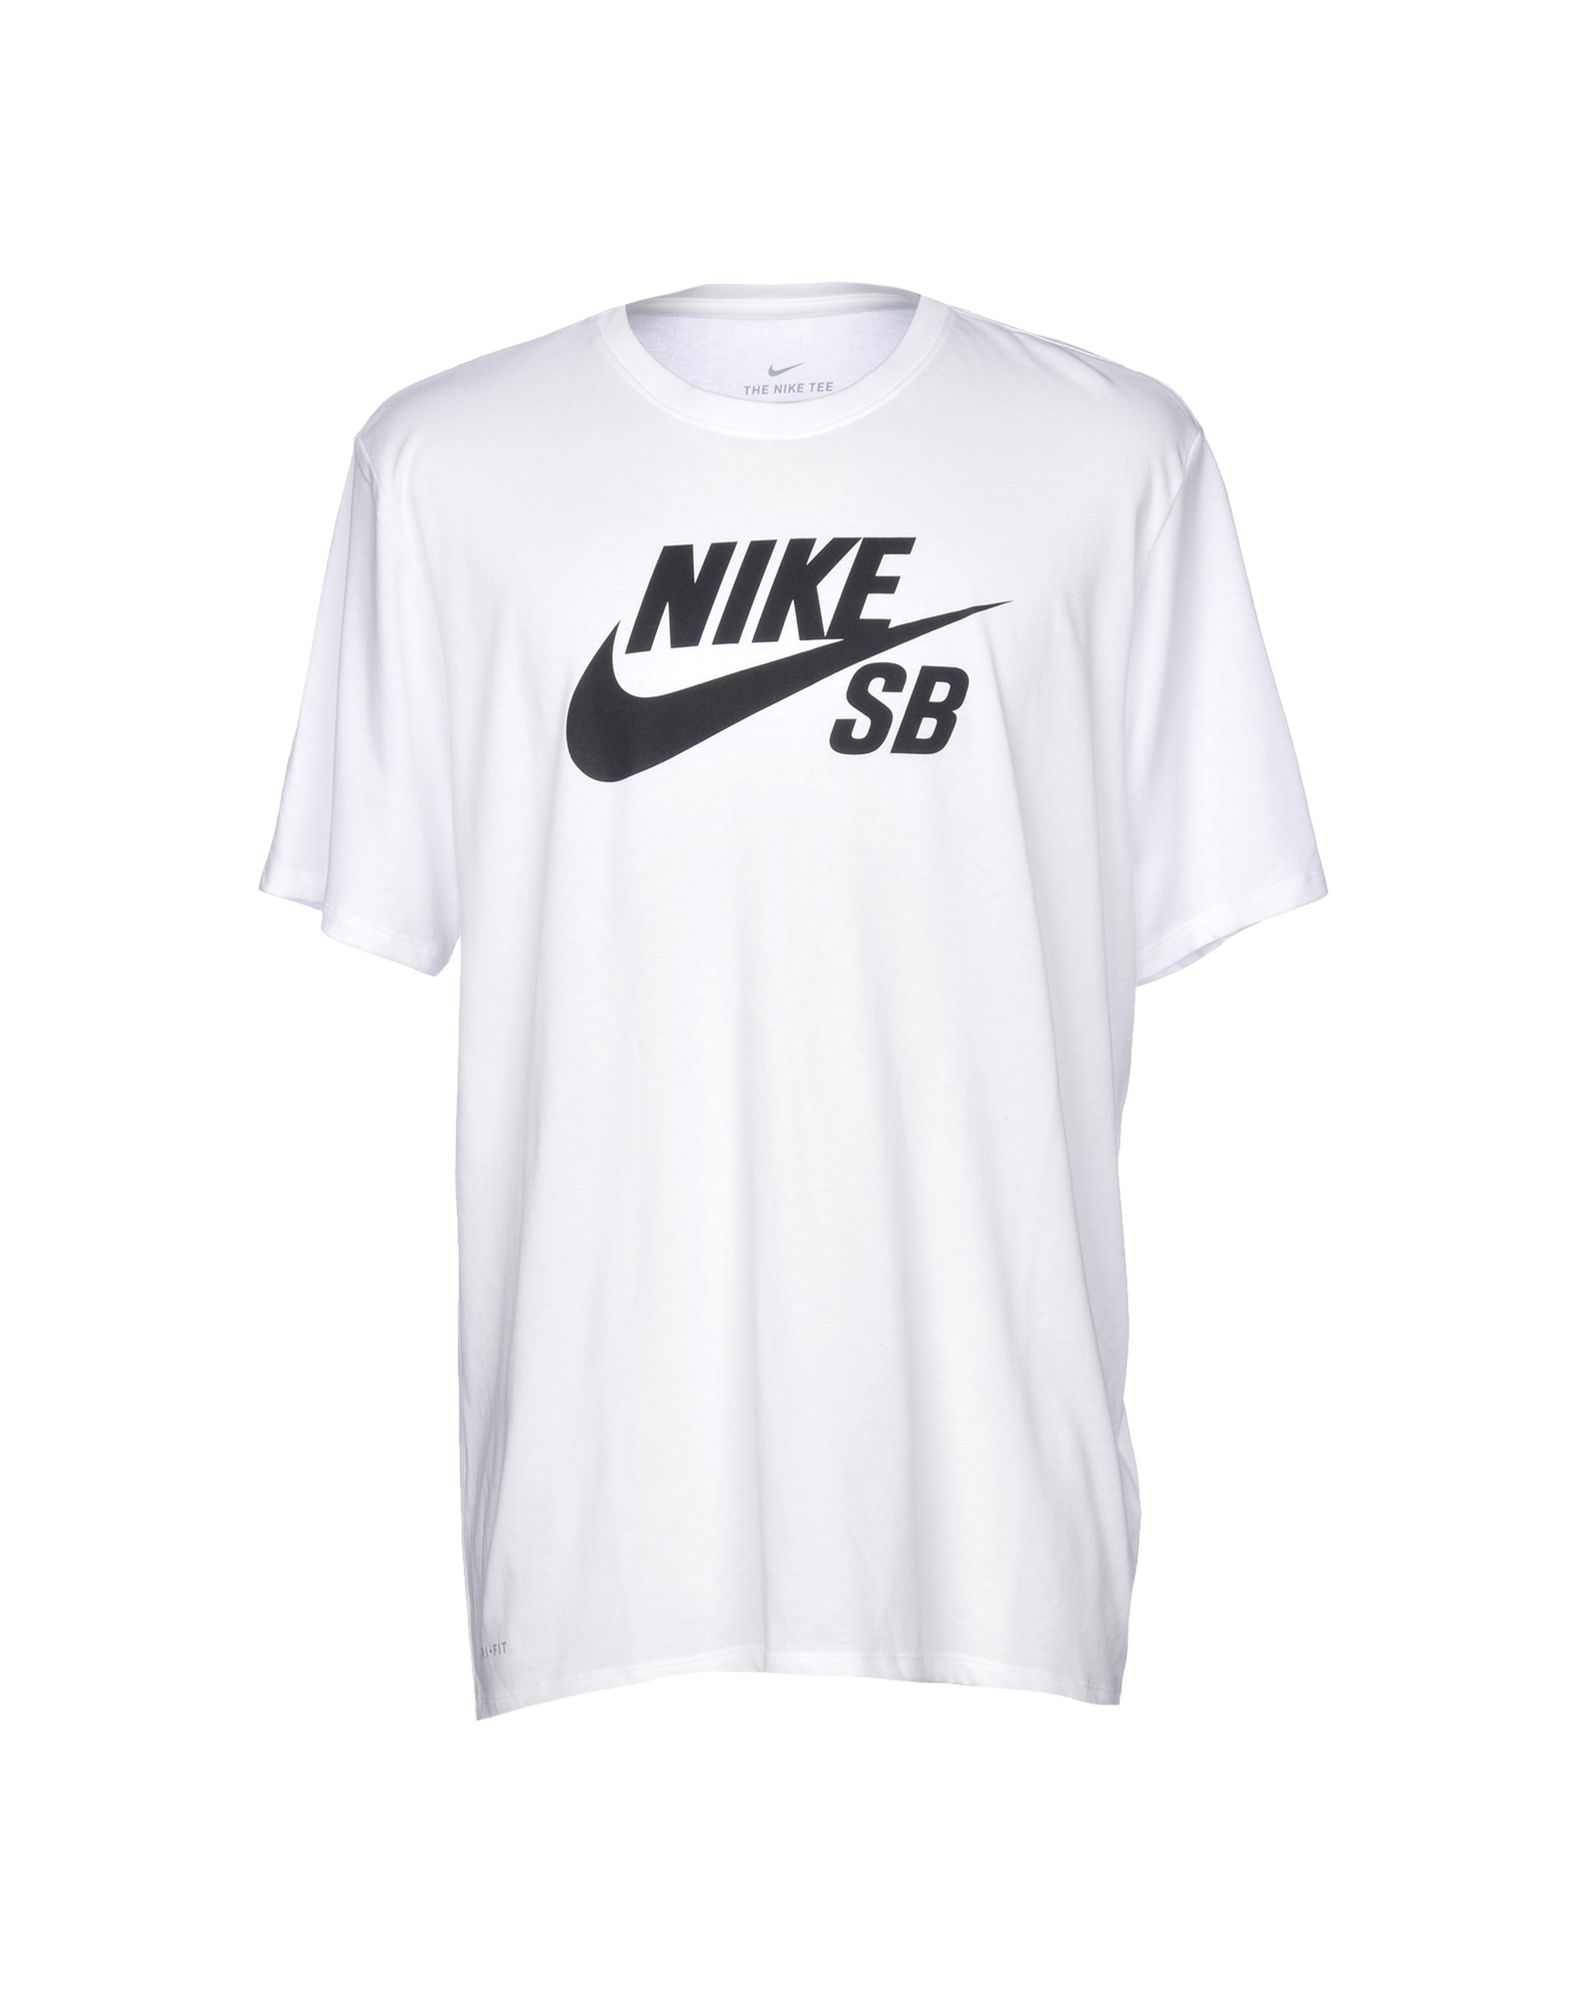 NIKE SB COLLECTION Футболка